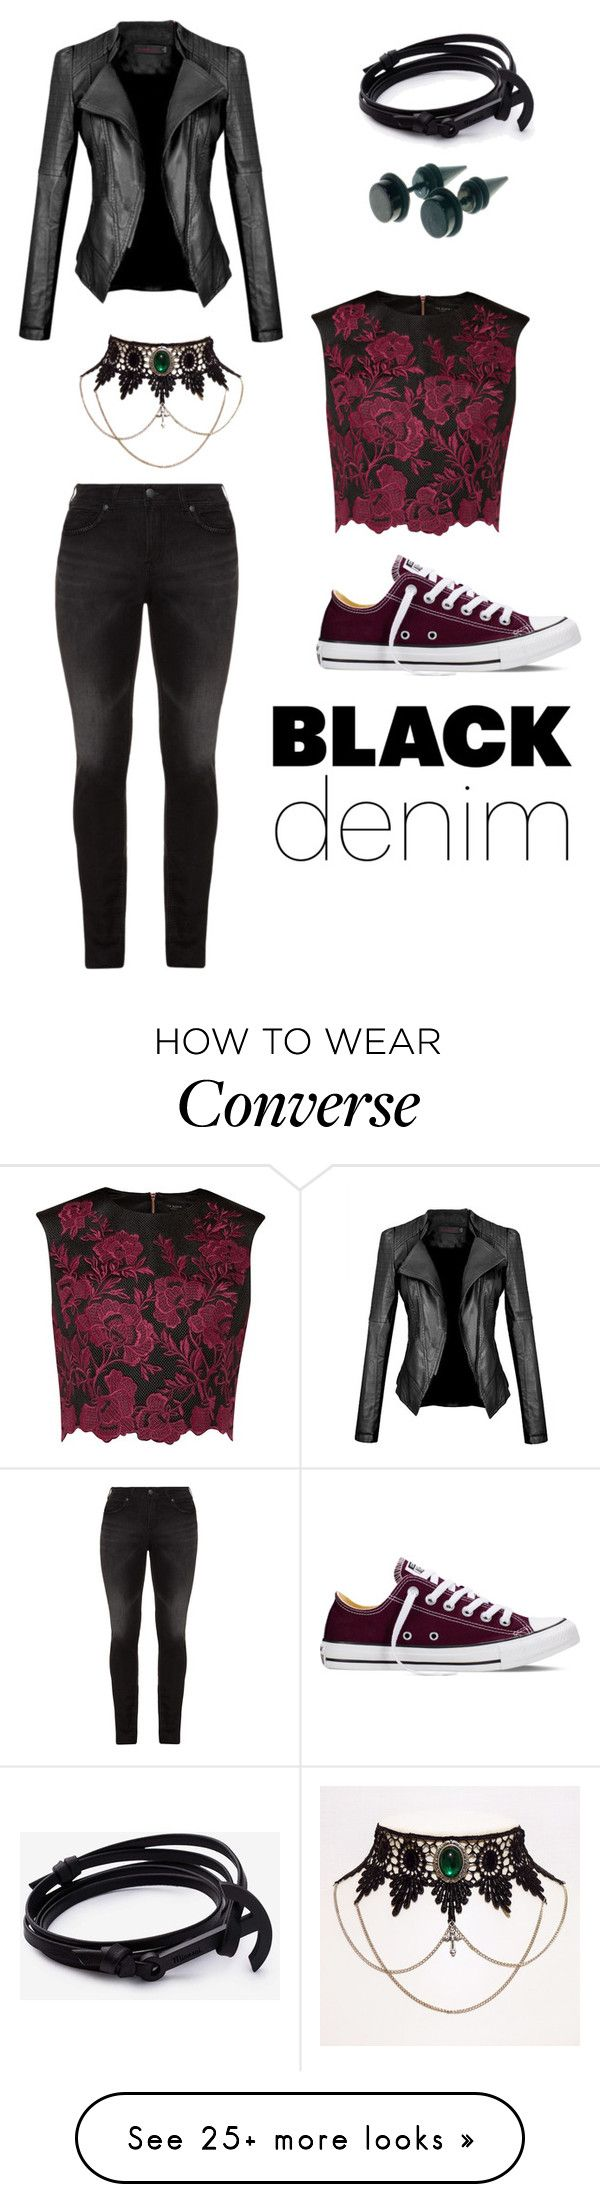 """Rose"" by doctor-nova on Polyvore featuring Silver Jeans Co., Ted Baker, Converse, women's clothing, women's fashion, women, female, woman, misses and juniors"